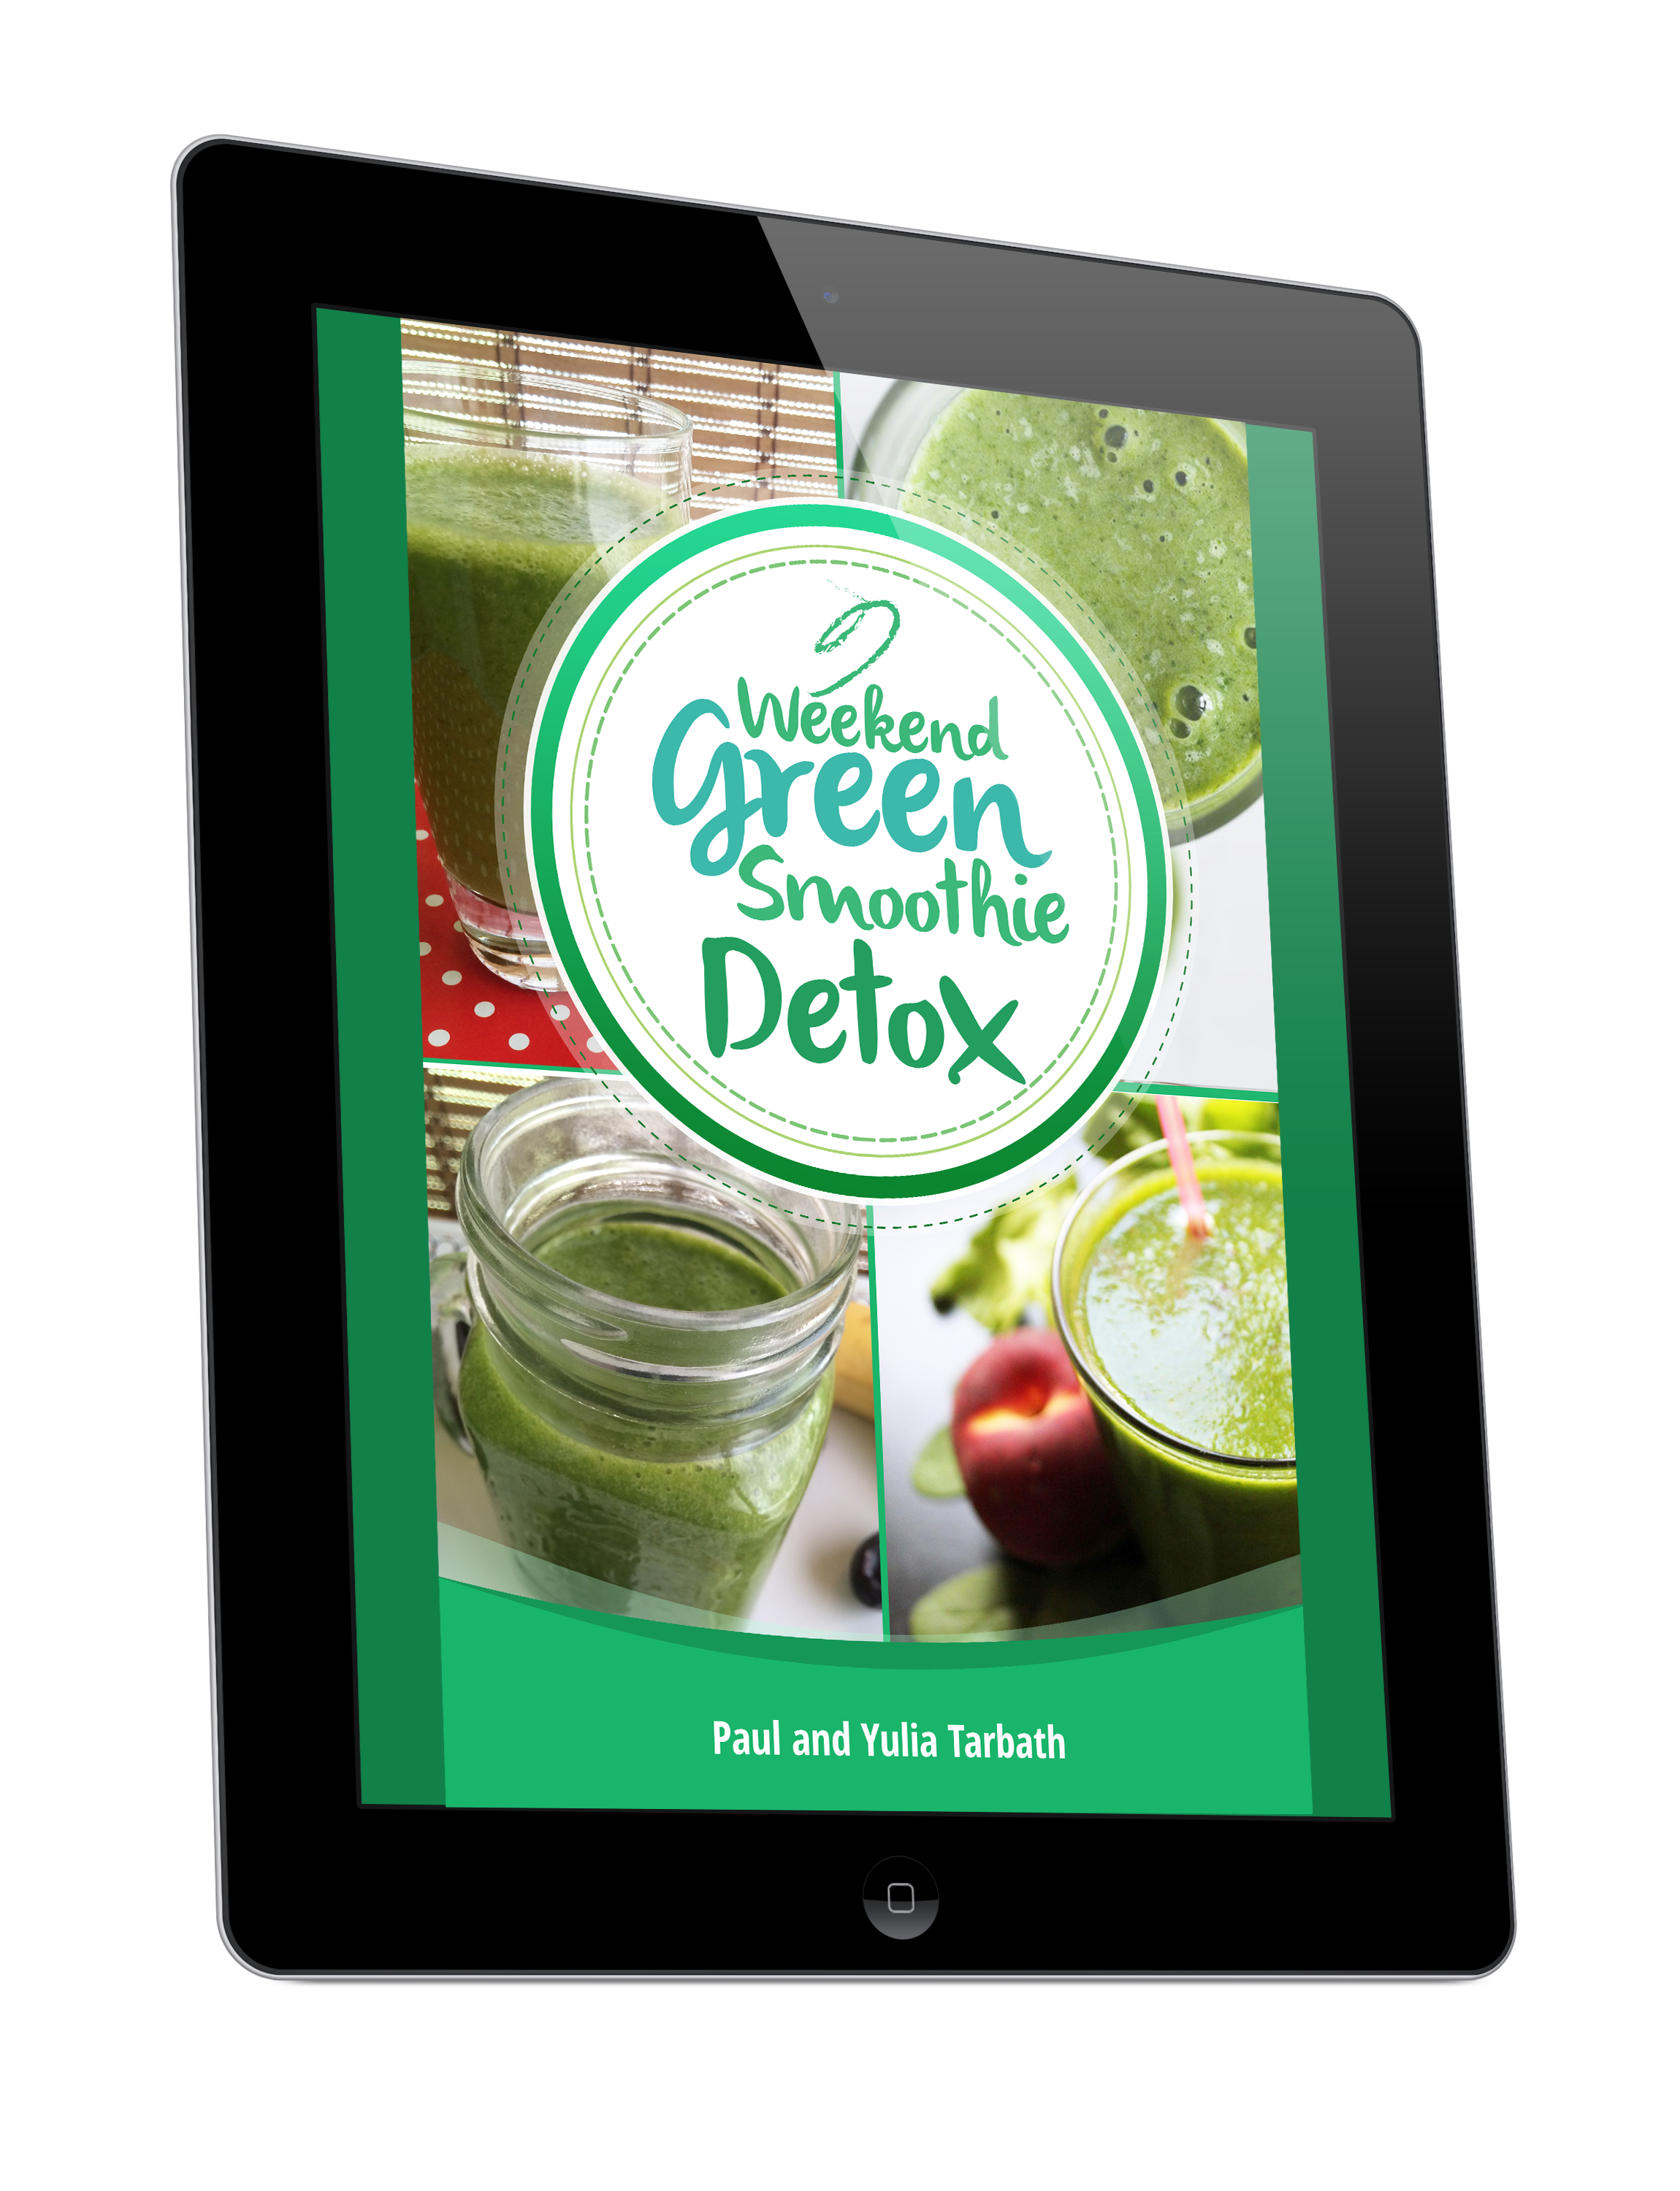 Weekend Green Smoothie Detox